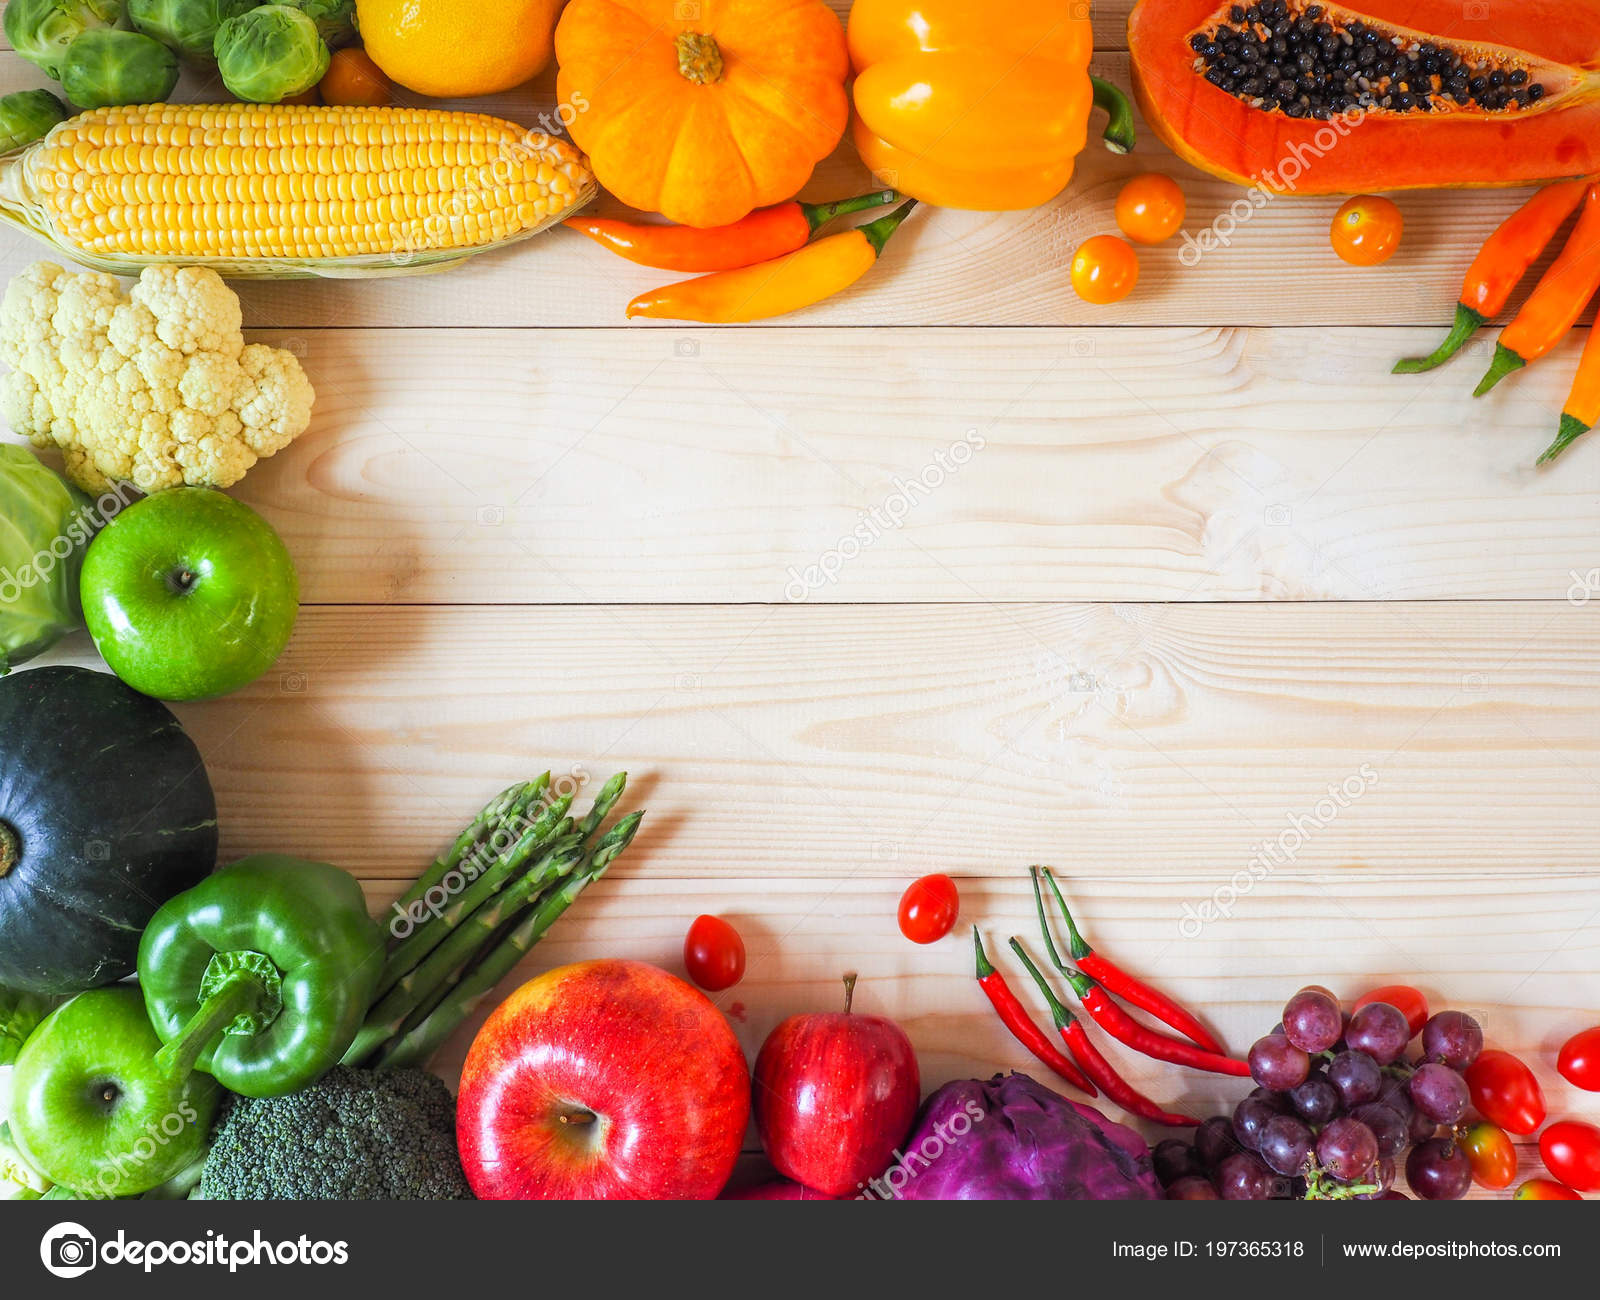 Colorful Fresh Fruits Vegetables Wood Background Healthy ...